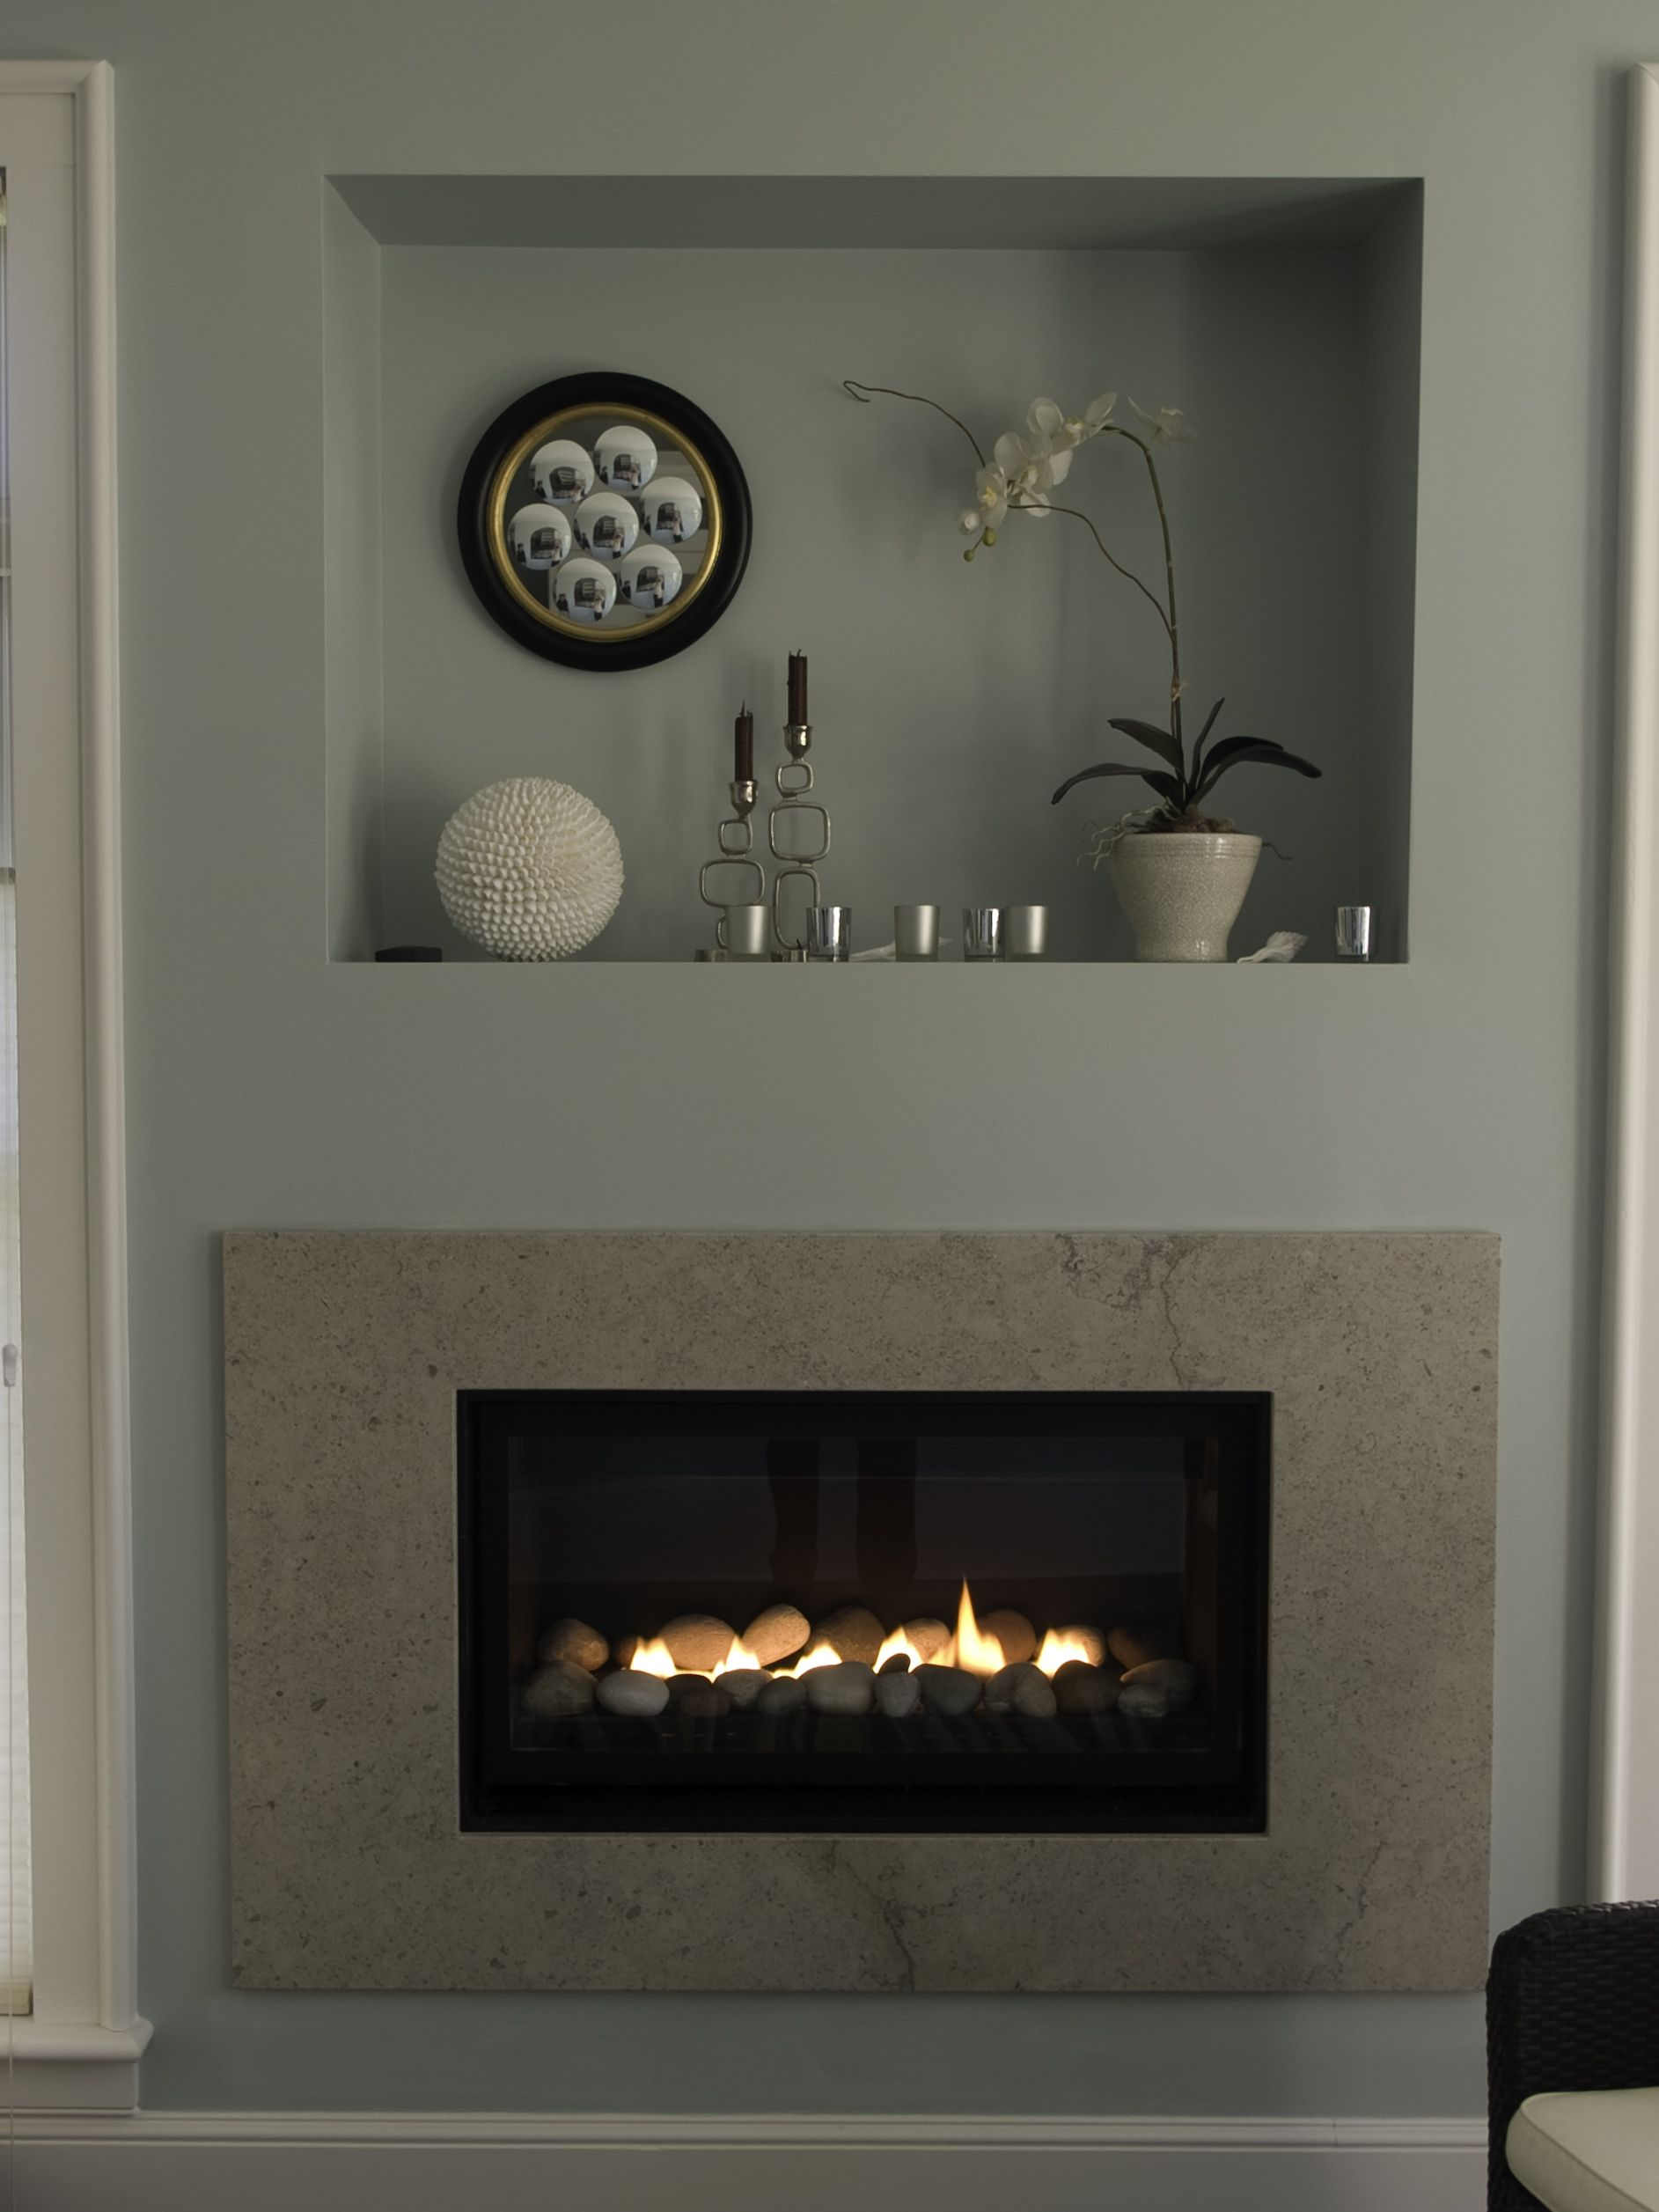 Gas Fireplace With A Clean Face Surround Modern Electric